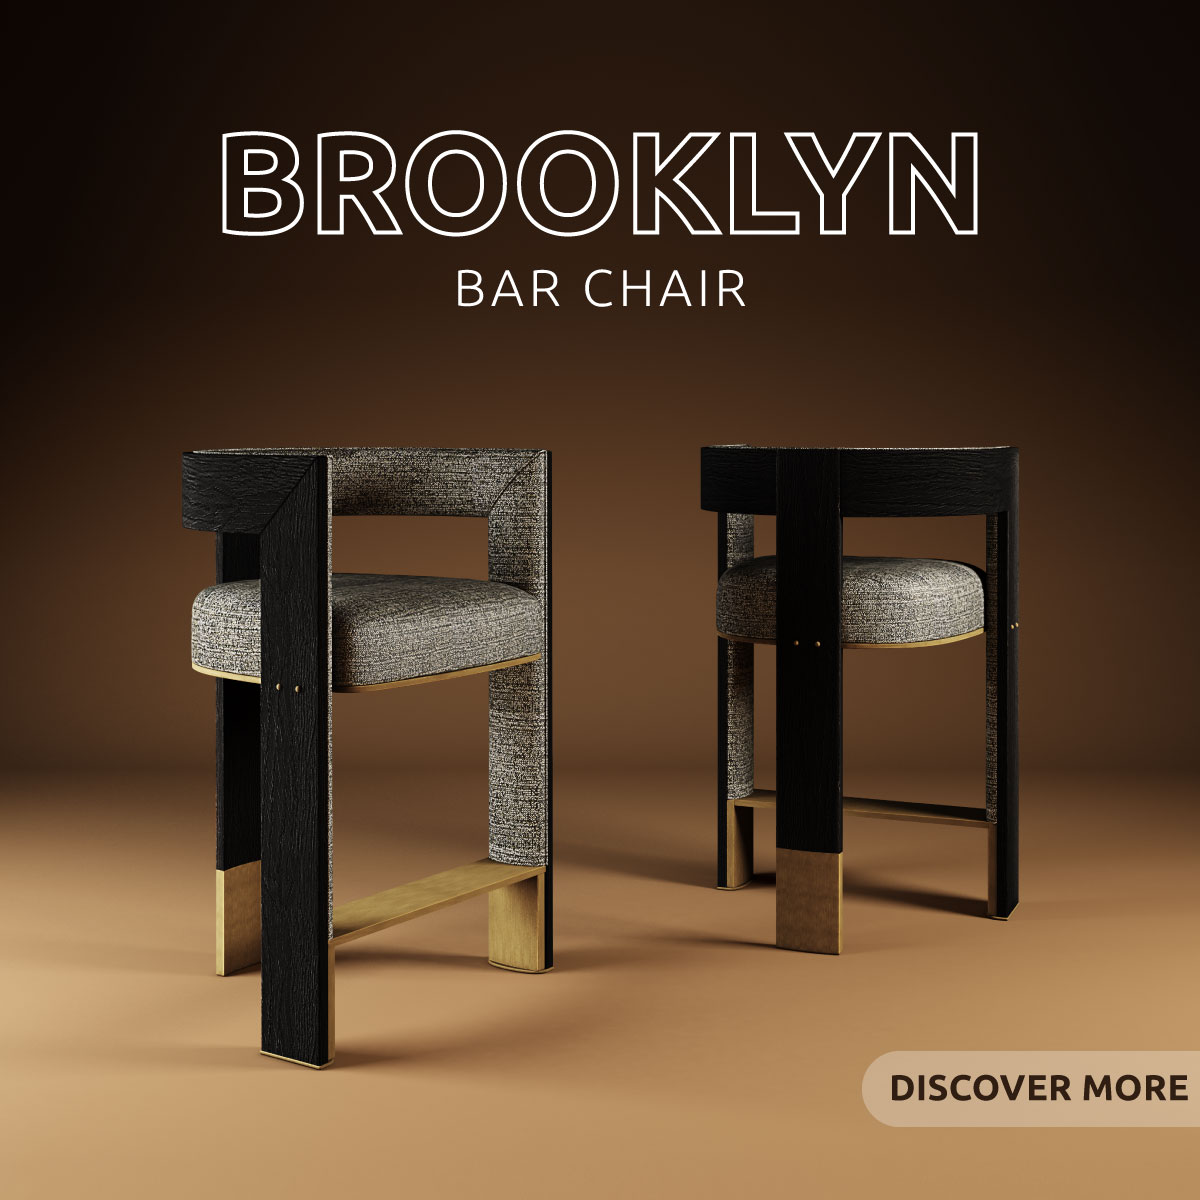 Brooklyn Bar Chair